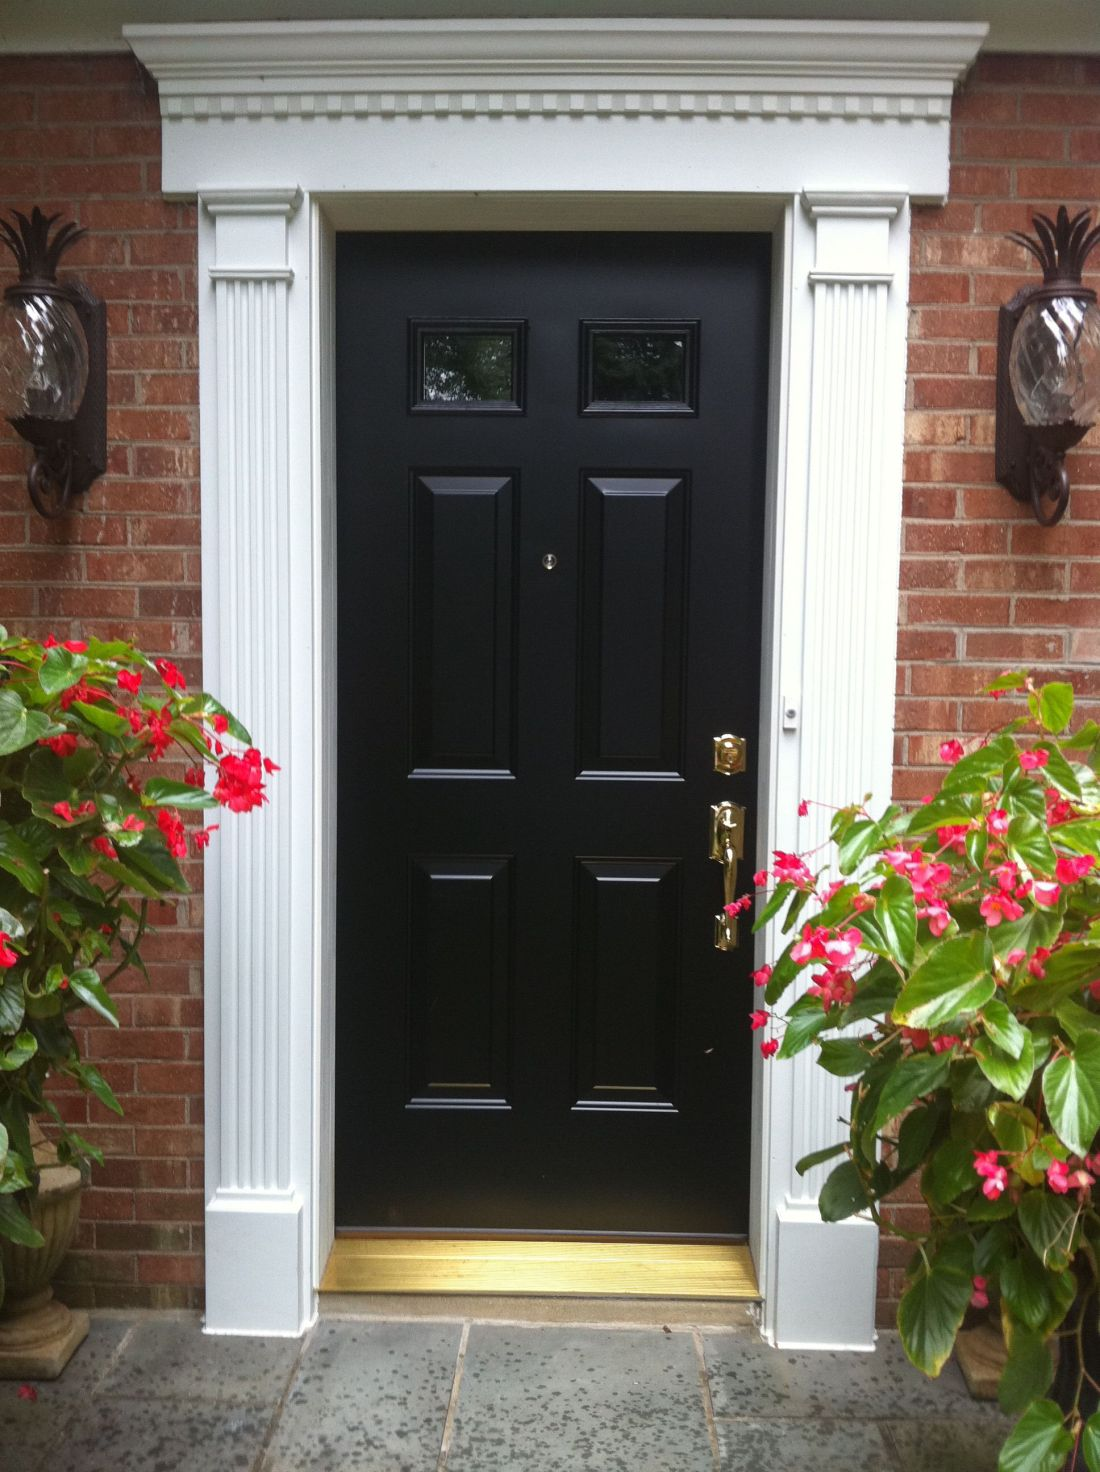 Amazing white classy paneled pilaster front door trim with